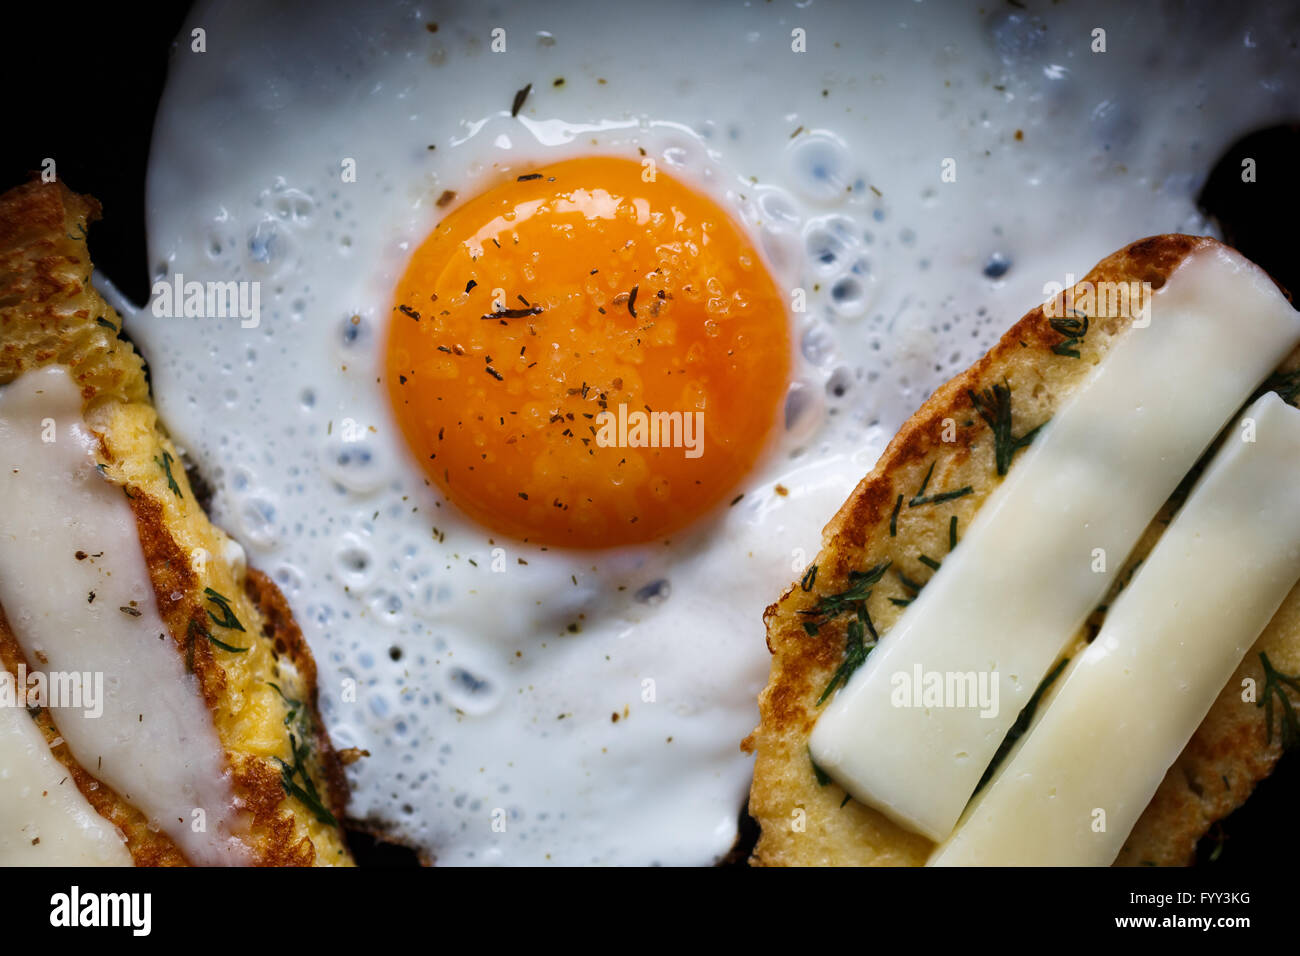 fried egg and bread with cheese - Stock Image